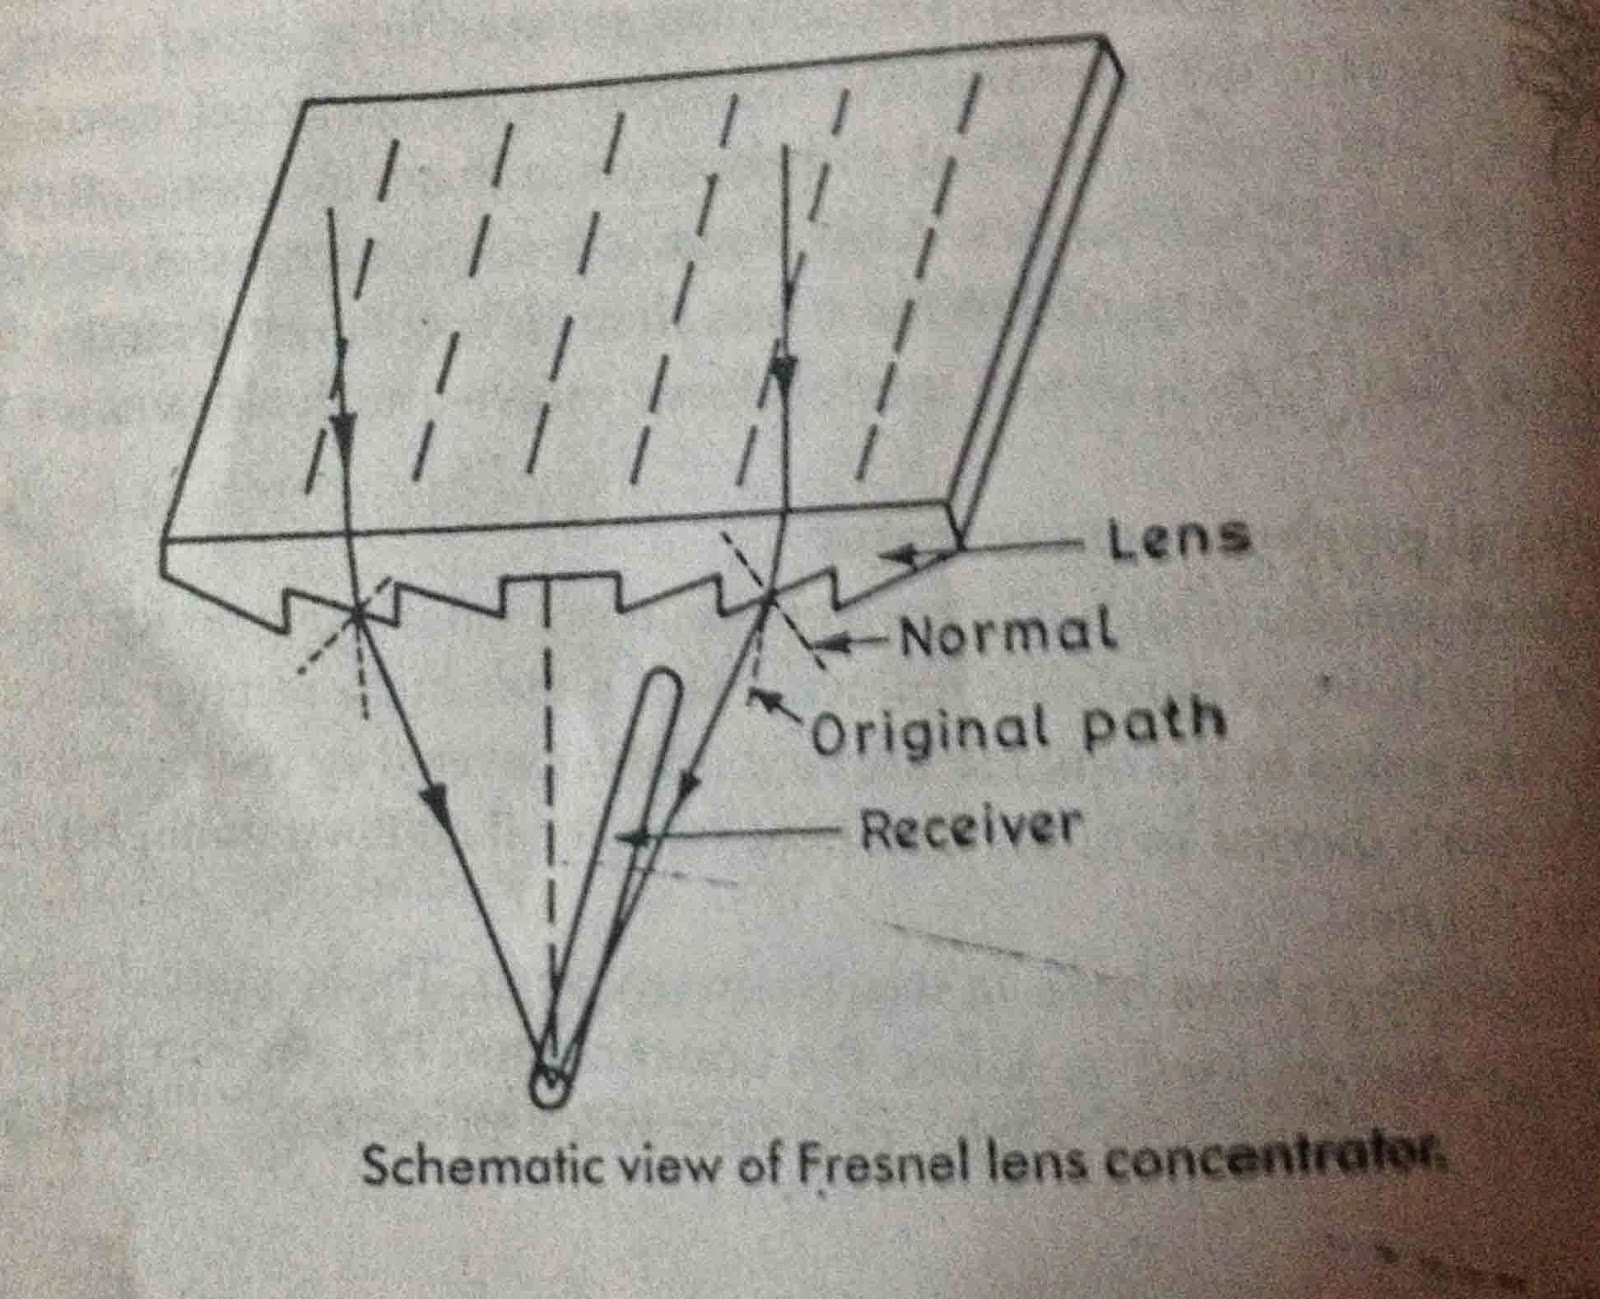 Linear Fresnel Lens Construction and Working Principle